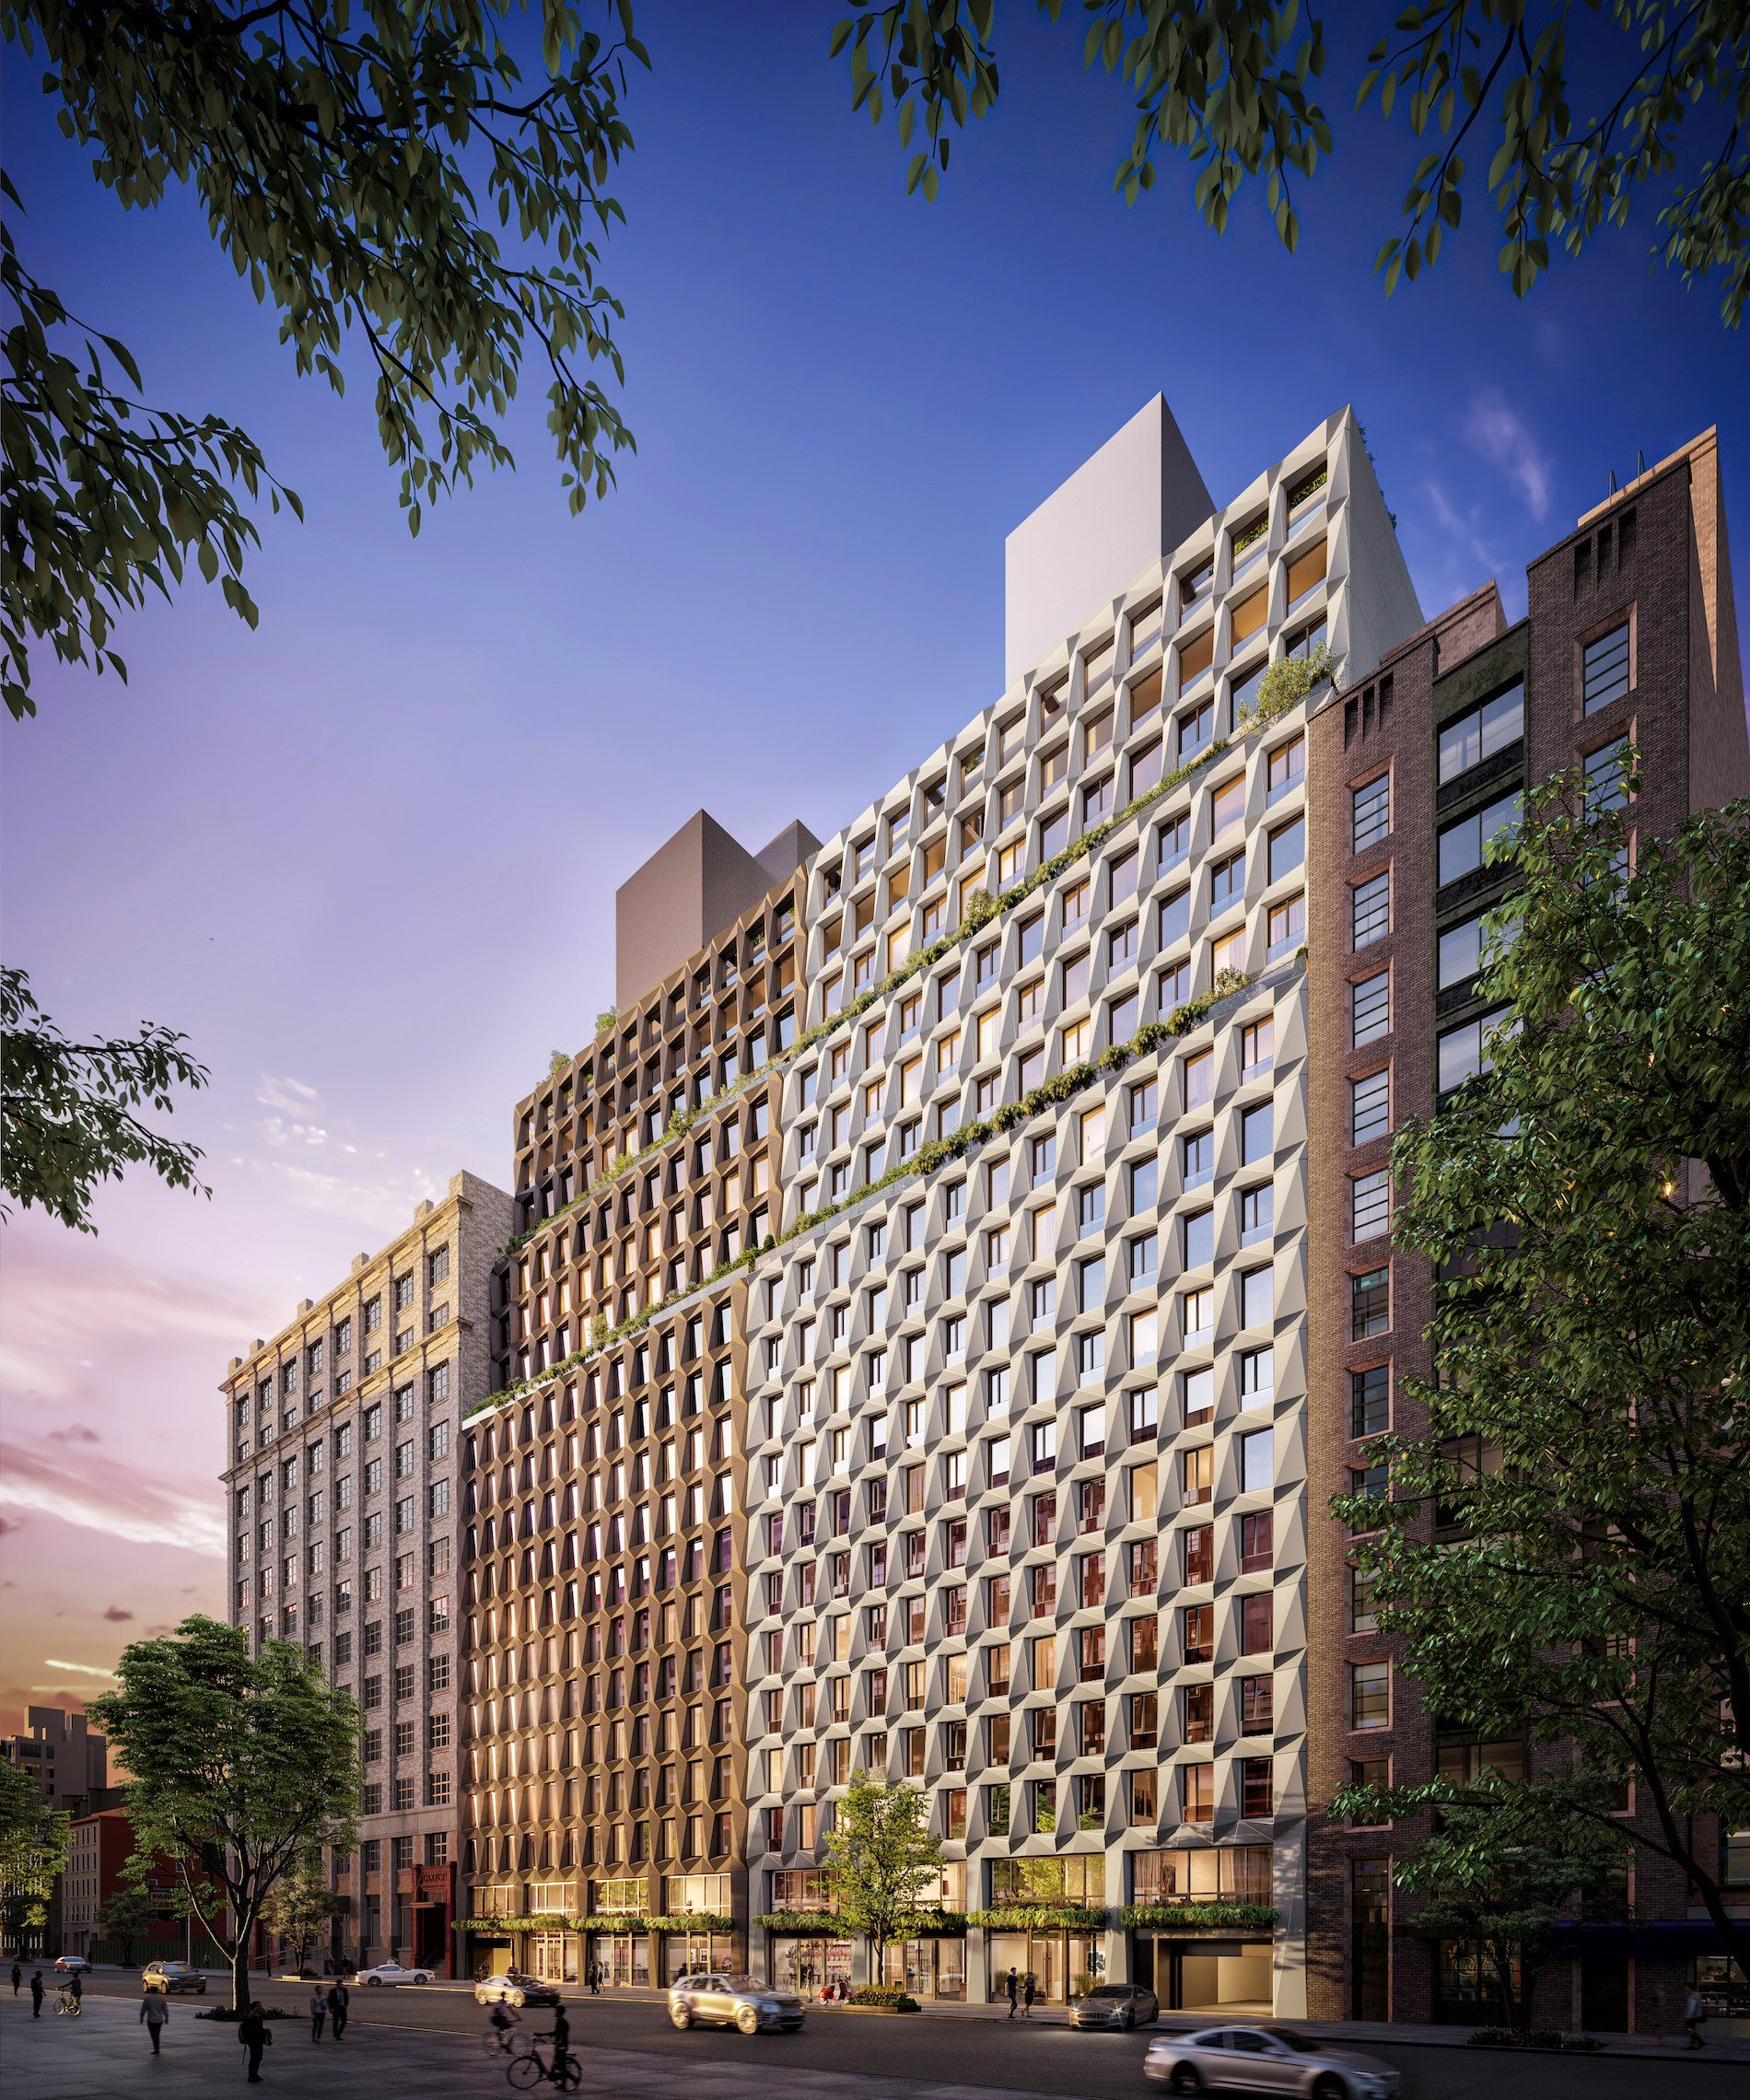 Lottery Launches For 35 Affordable Units At Wellness Themed Chelsea Condo Rental From 995 Month 6sqft In 2021 Mosaic Pool New York Architecture Affordable Housing